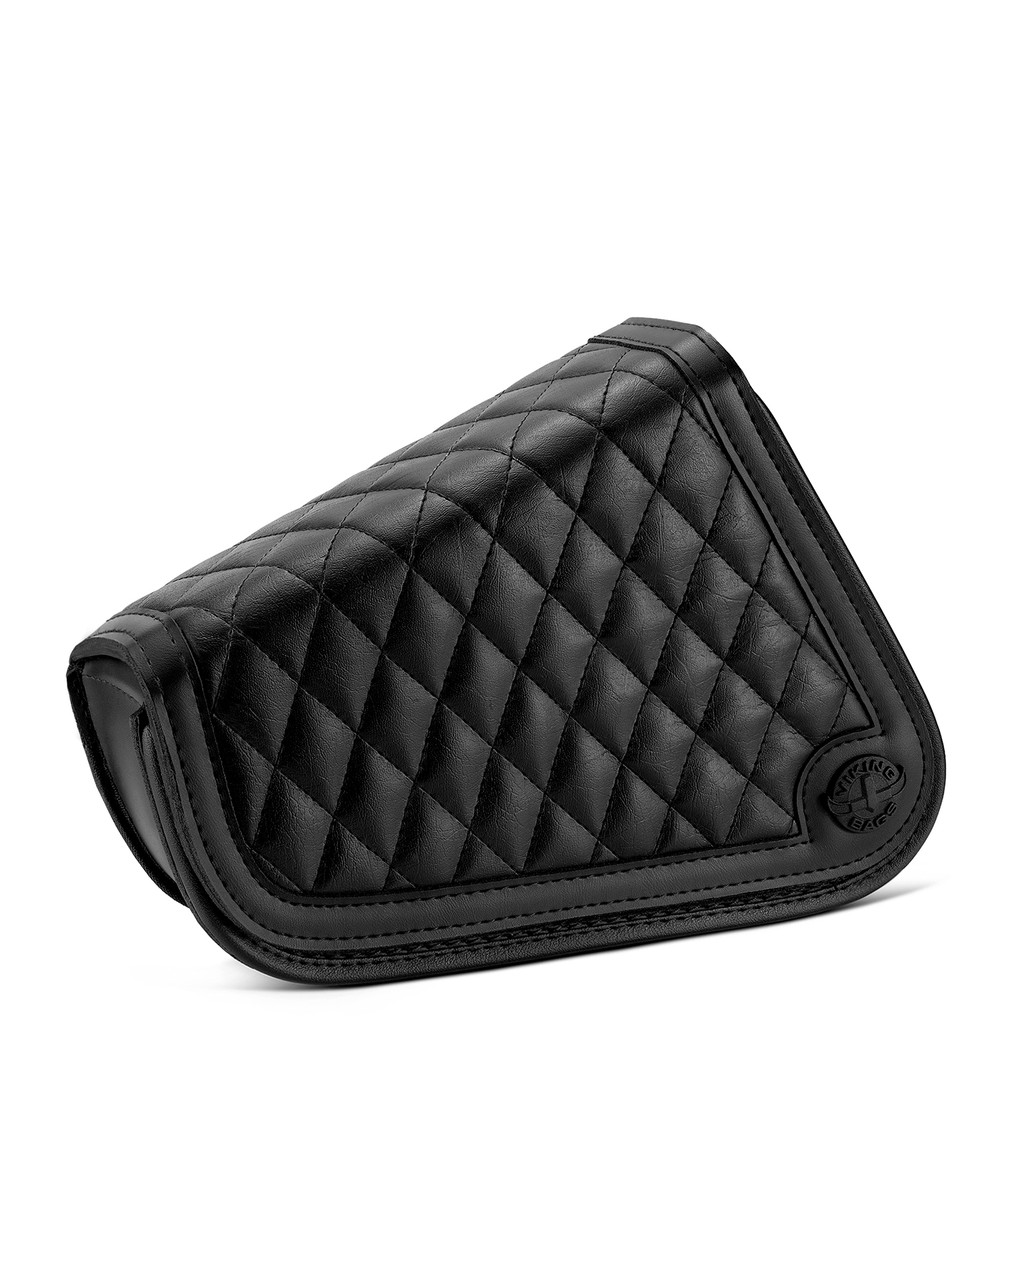 Viking Iron Born Diamond Stitch Leather Motorcycle Swing Arm Bag for Harley Davidson Sportster Main View